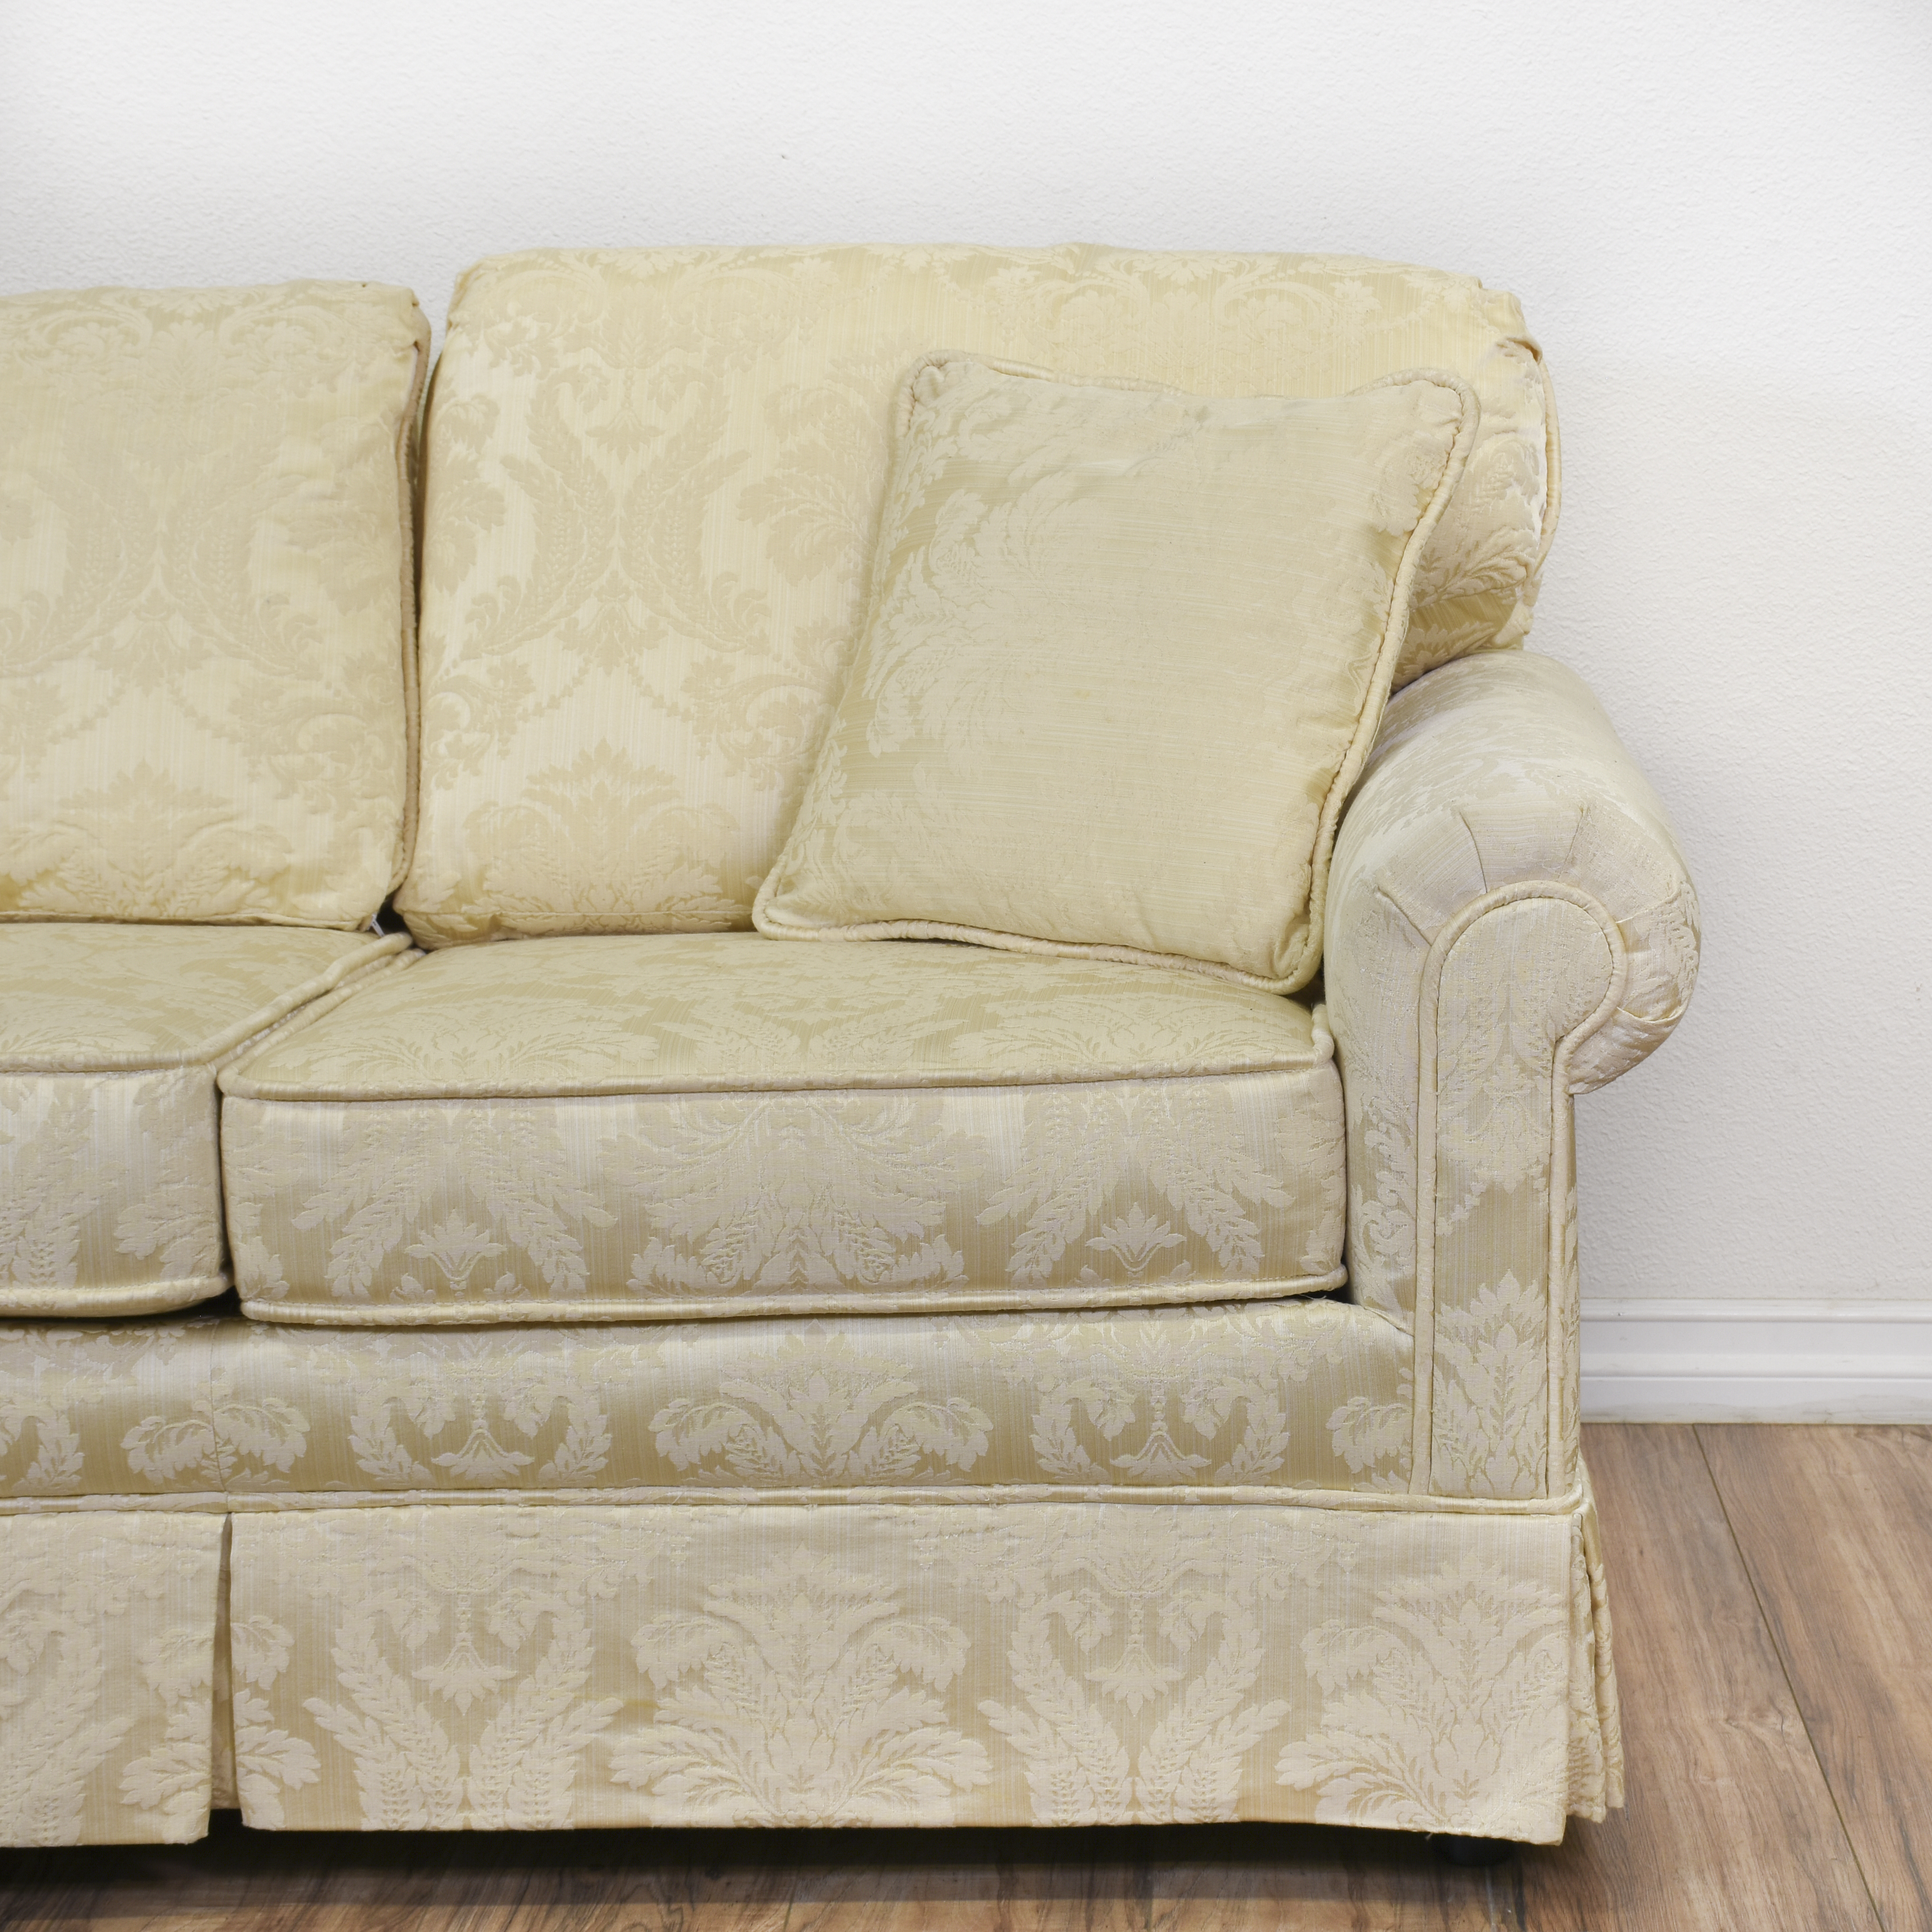 damask sofa bed beige leather sofas sale quotkrause 39s quot cream floral loveseat vintage